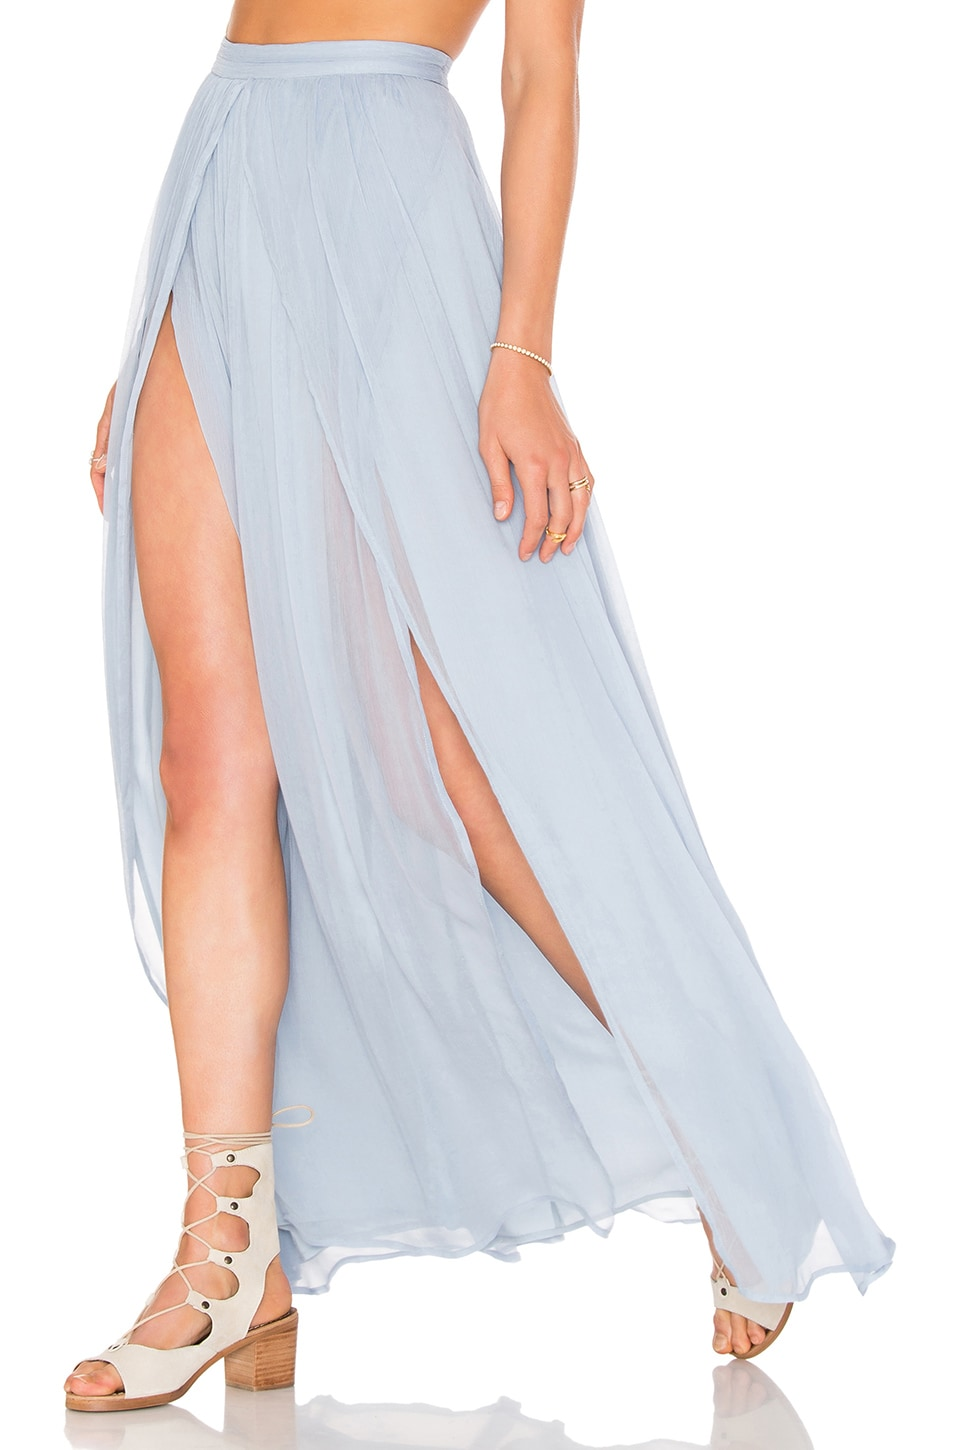 THE JETSET DIARIES x Revolve Prima Maxi Skirt in Blue Lagoon